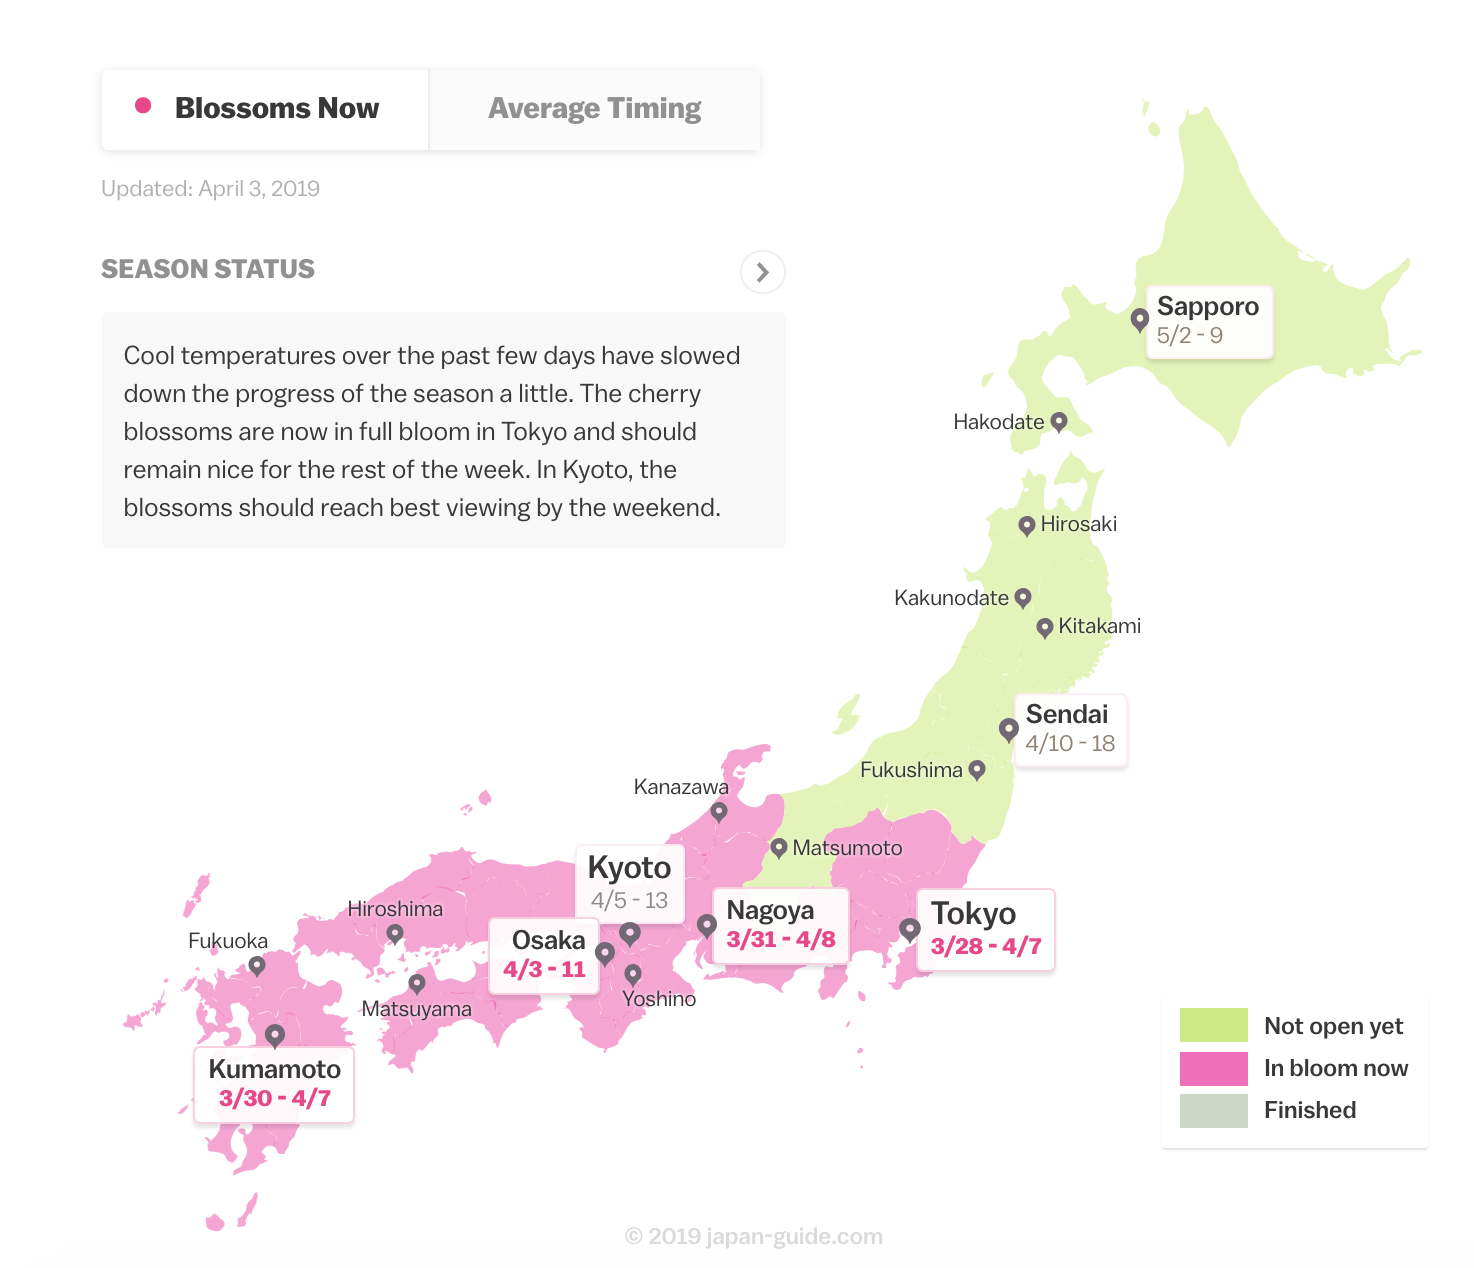 The forecaster at japan-guide.com helps predict when cherry blossoms were opening for which cities in Japan.